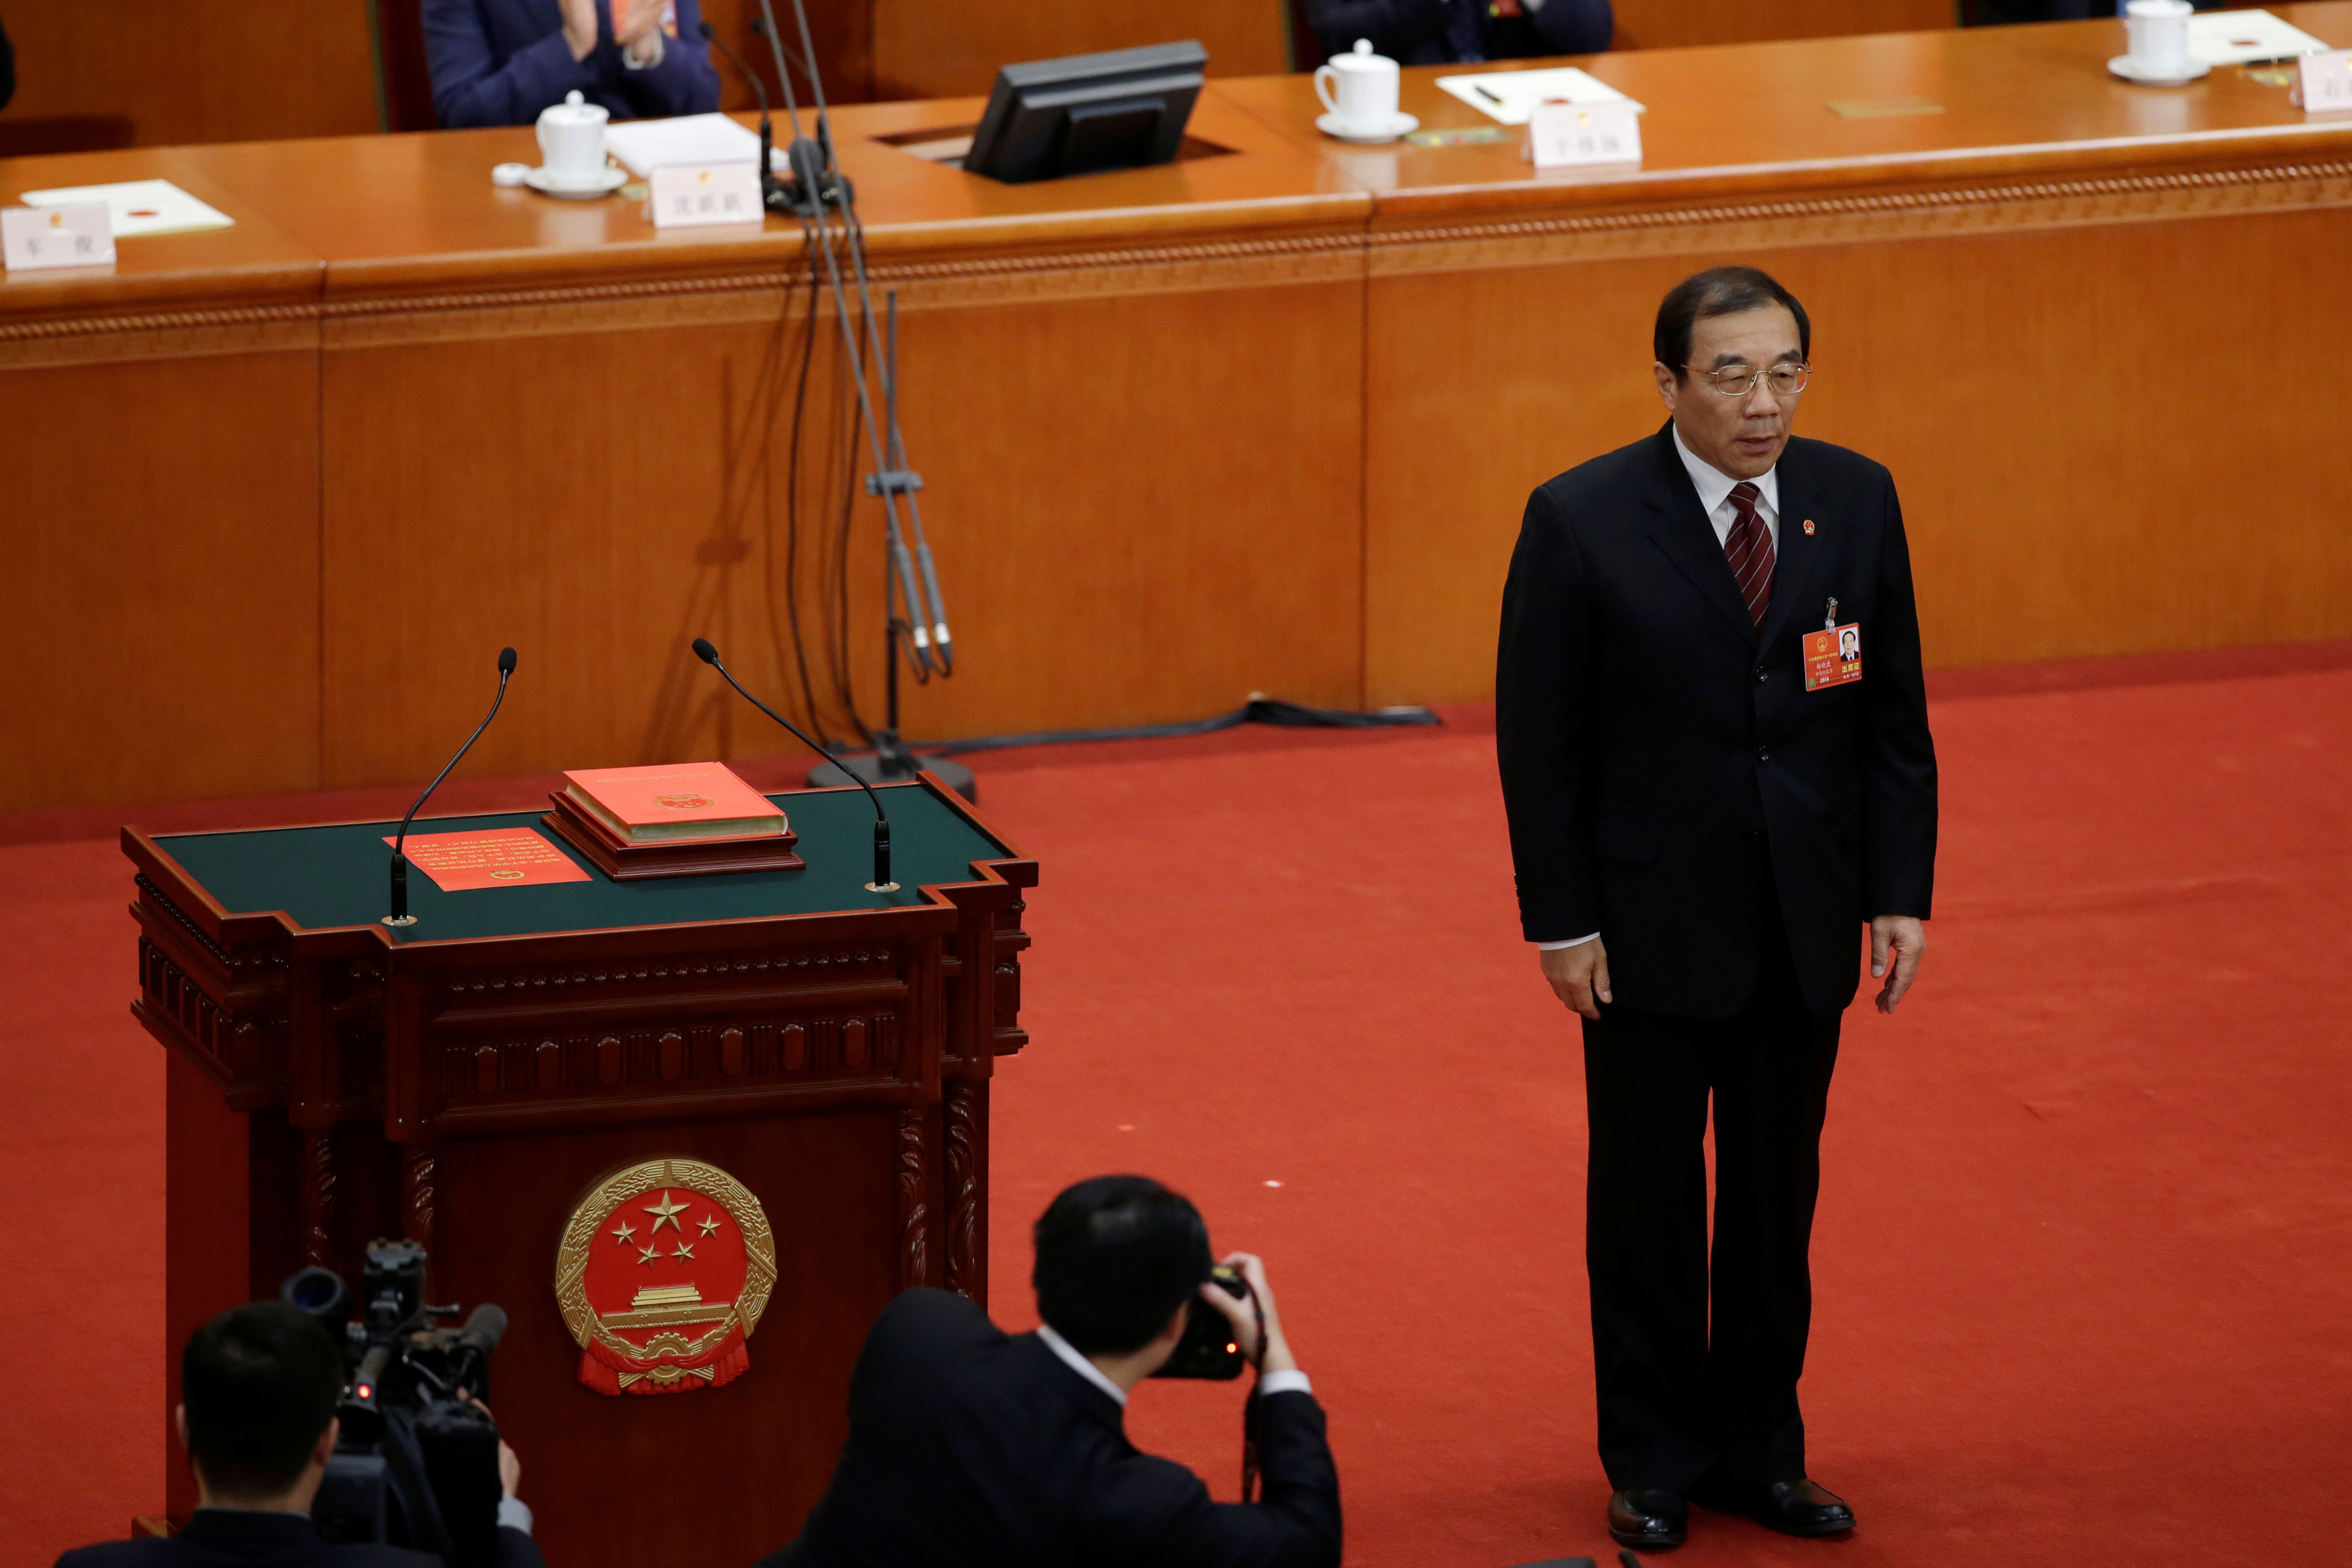 Newly elected head of the National Supervision Commission Yang Xiaodu stands after he takes the oath to the Constitution at the sixth plenary session of the National People's Congress (NPC) at the Great Hall of the People in Beijing, China March 18, 2018.